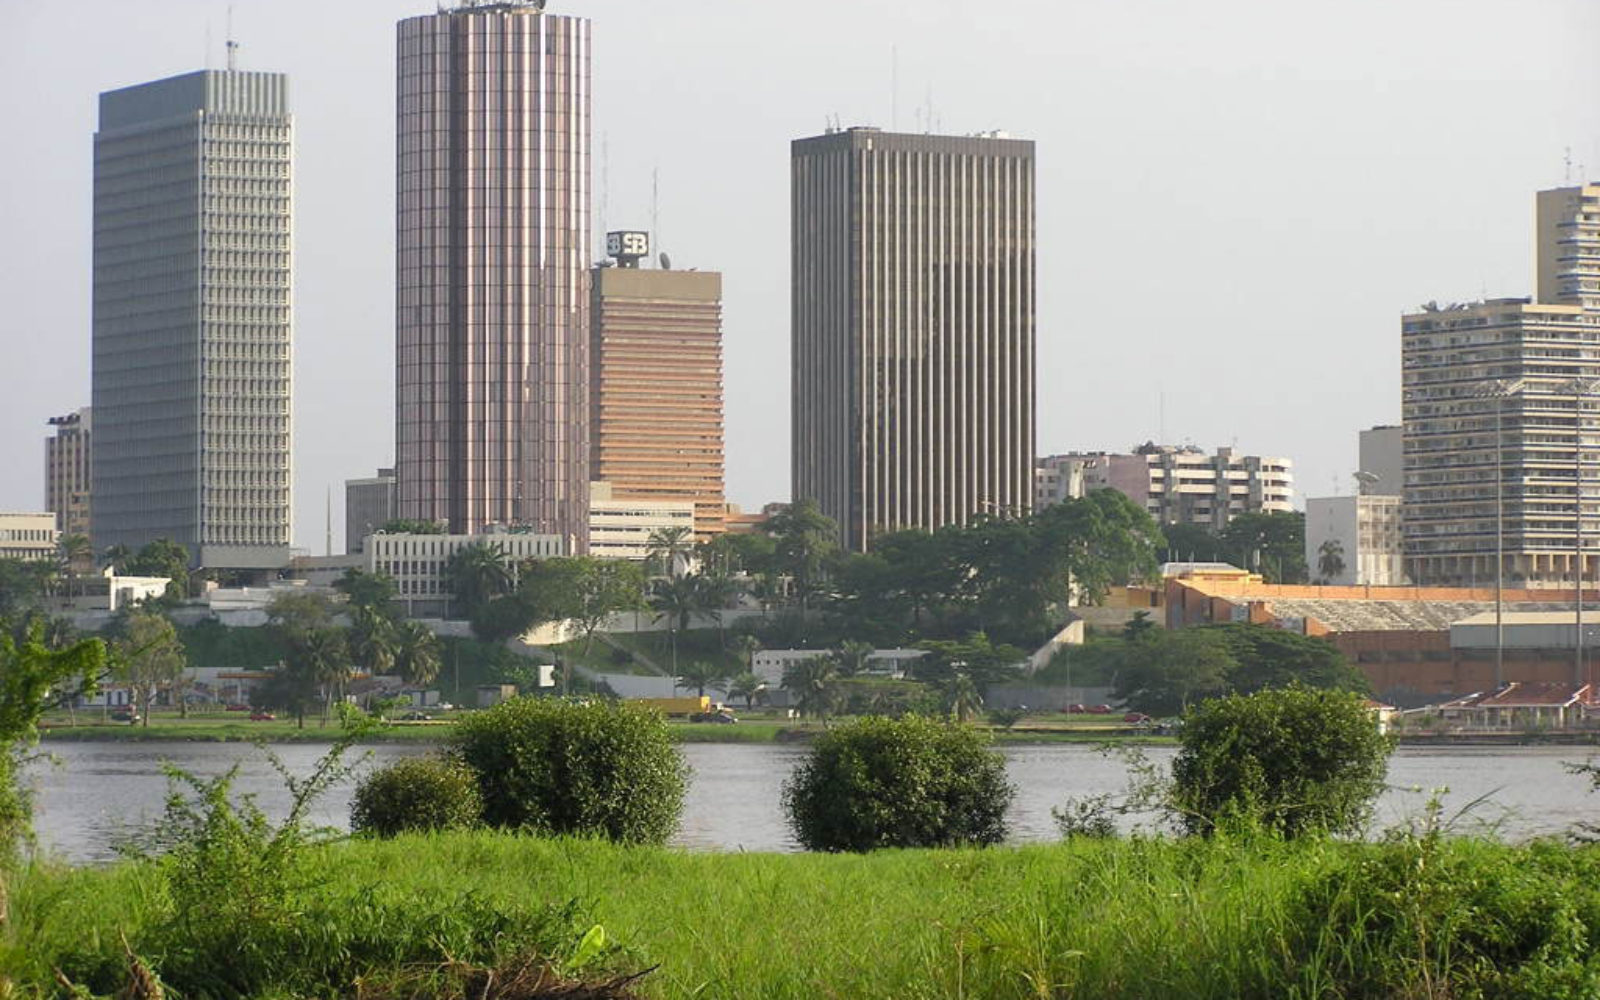 Ivory Coast has a $5.8 Billion Plan to develop its tourism sector